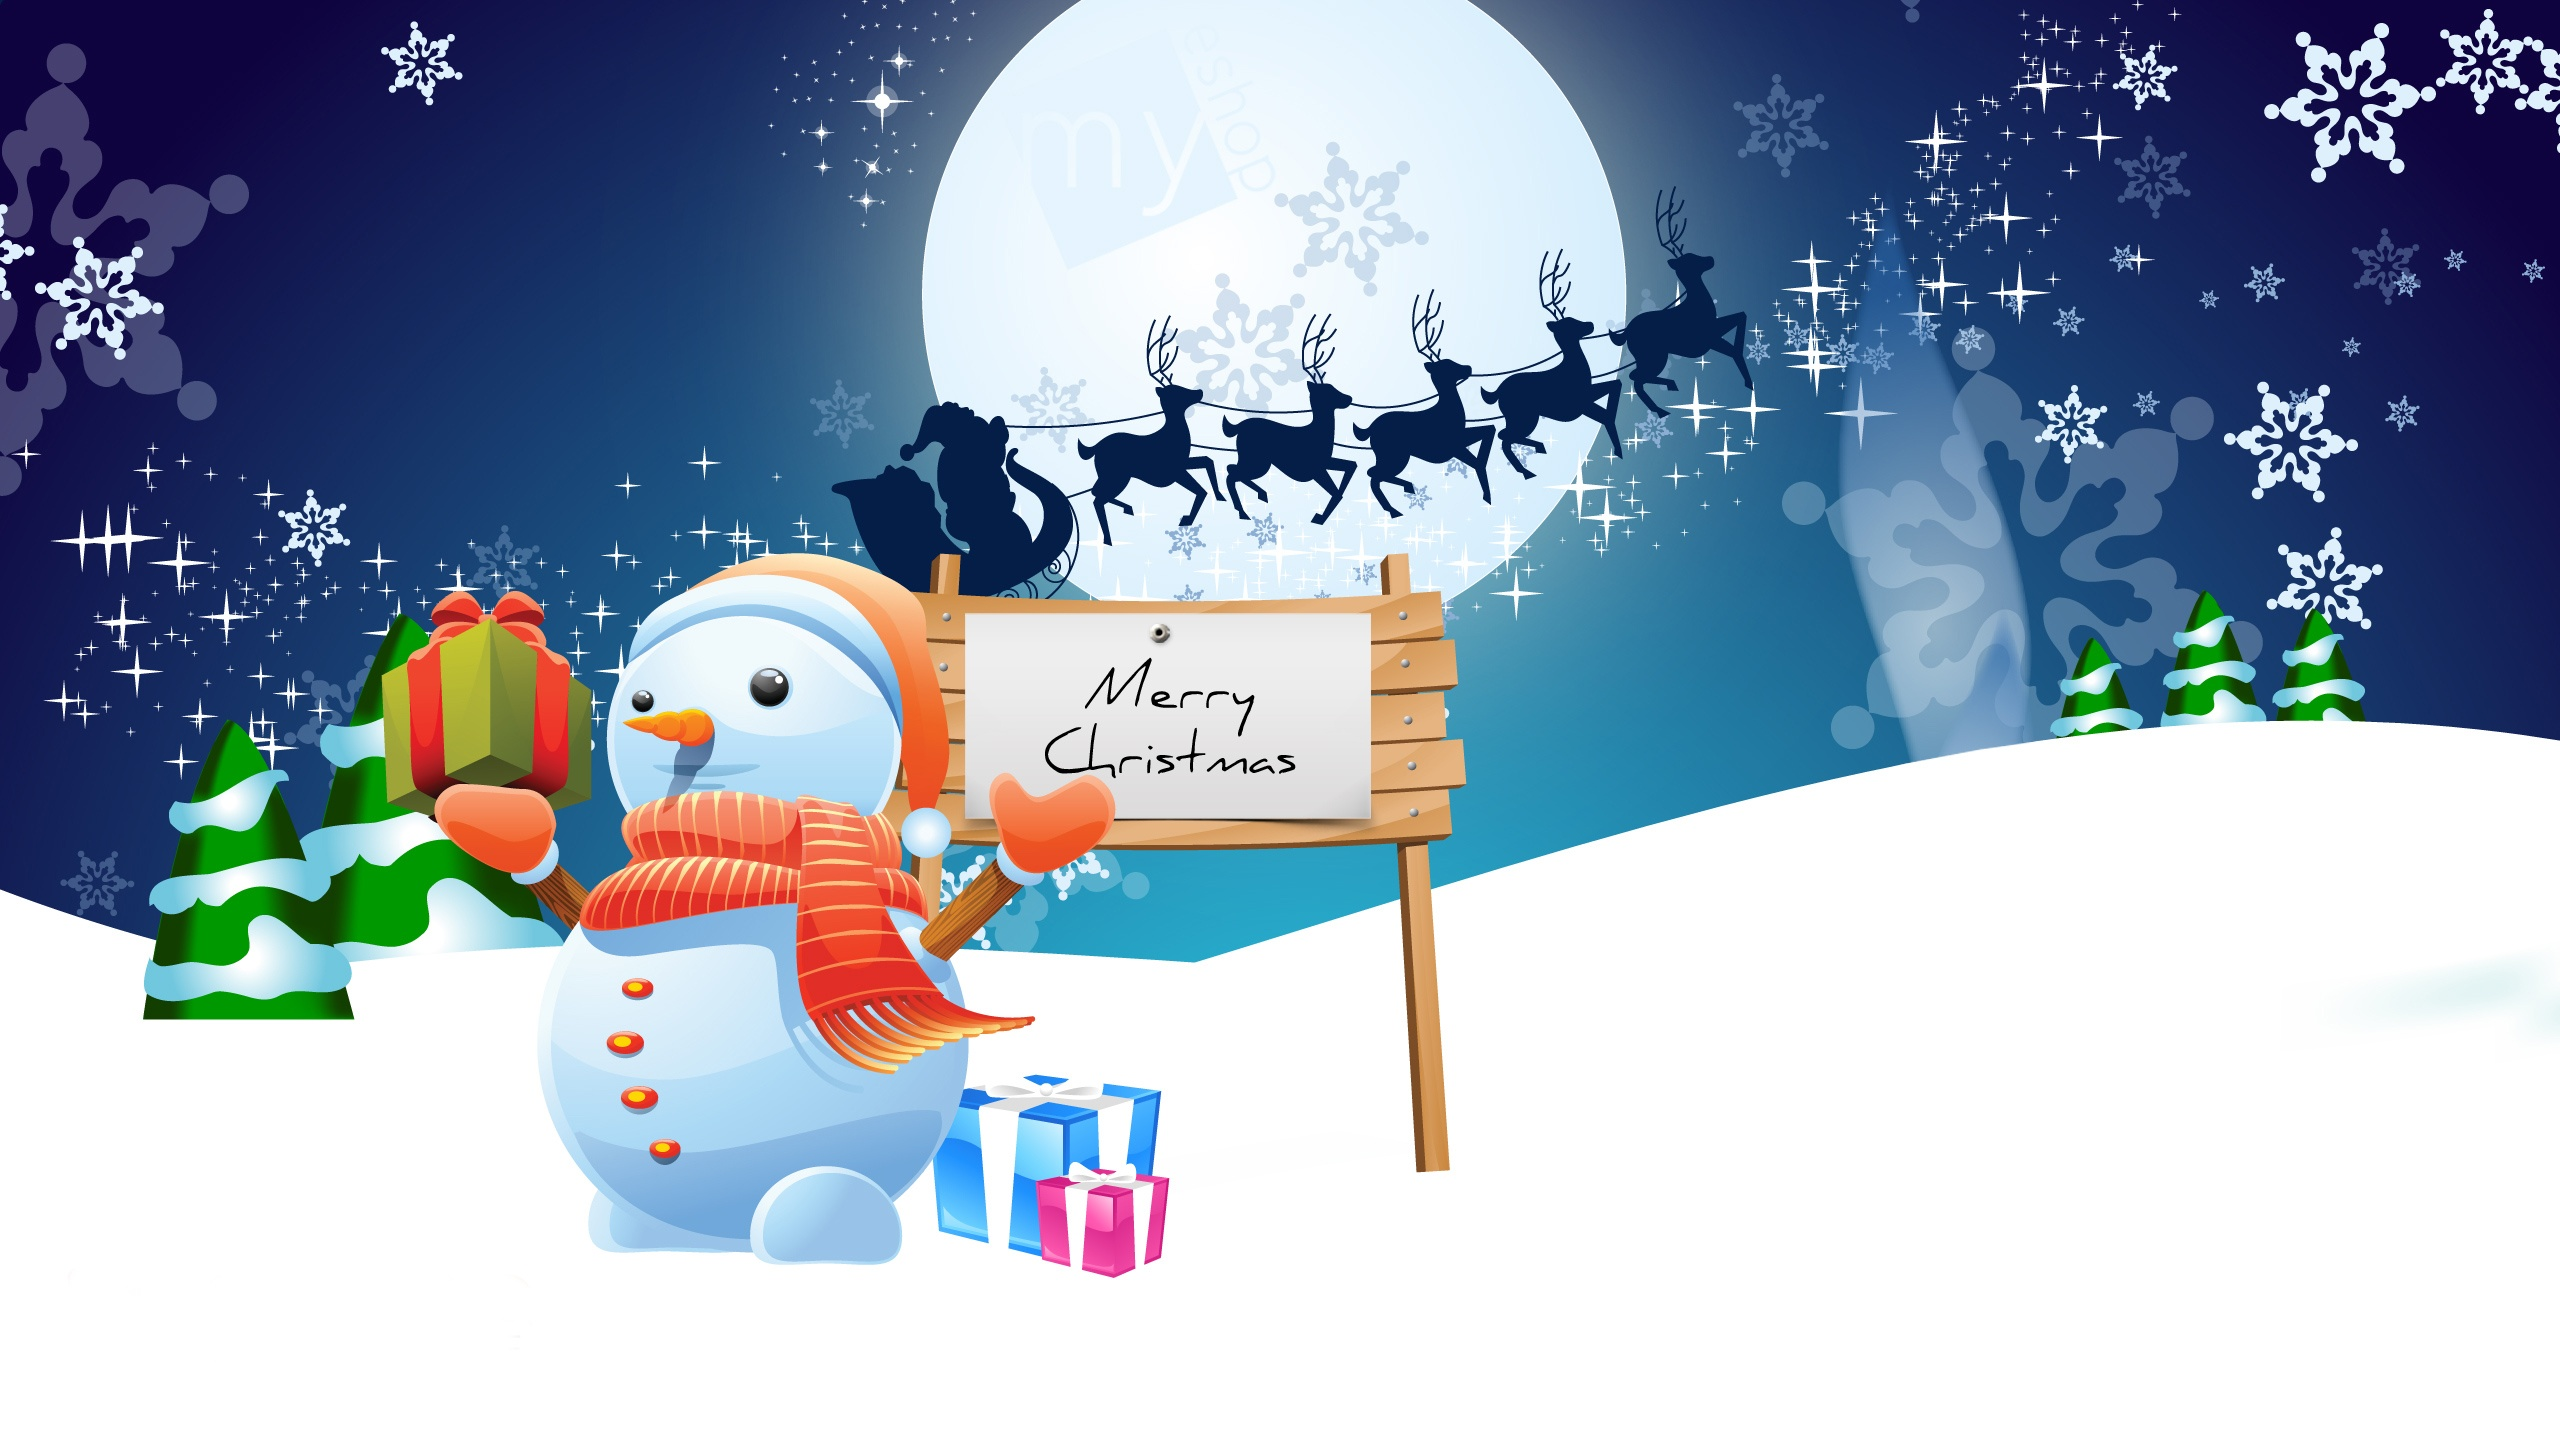 40 animated christmas wallpapers for 2015 - Animated Christmas Wallpaper